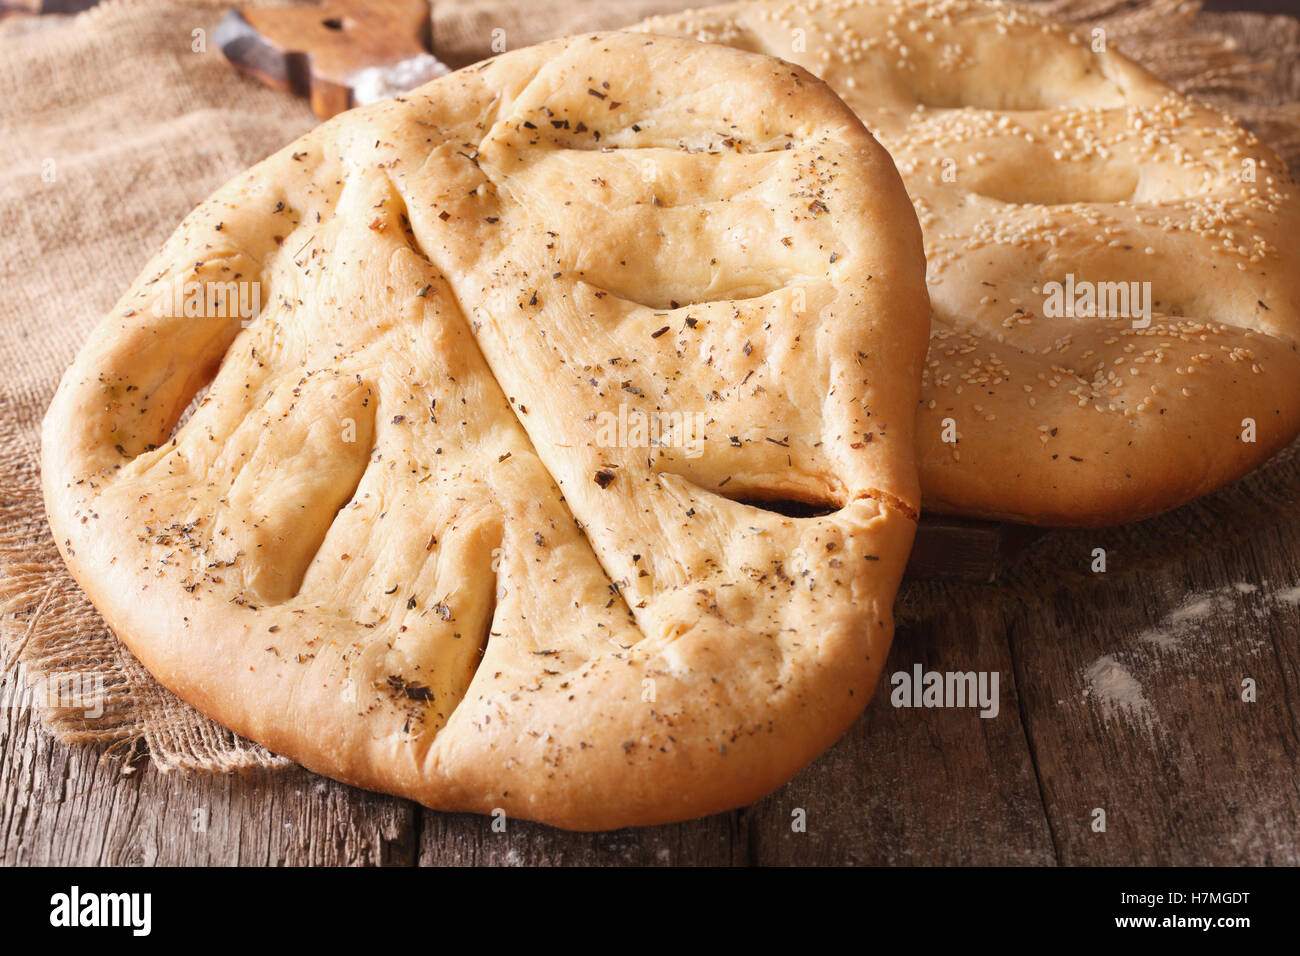 Homemade Fugasse French bread with sesame seeds and herbs closeup on the table. horizontal - Stock Image